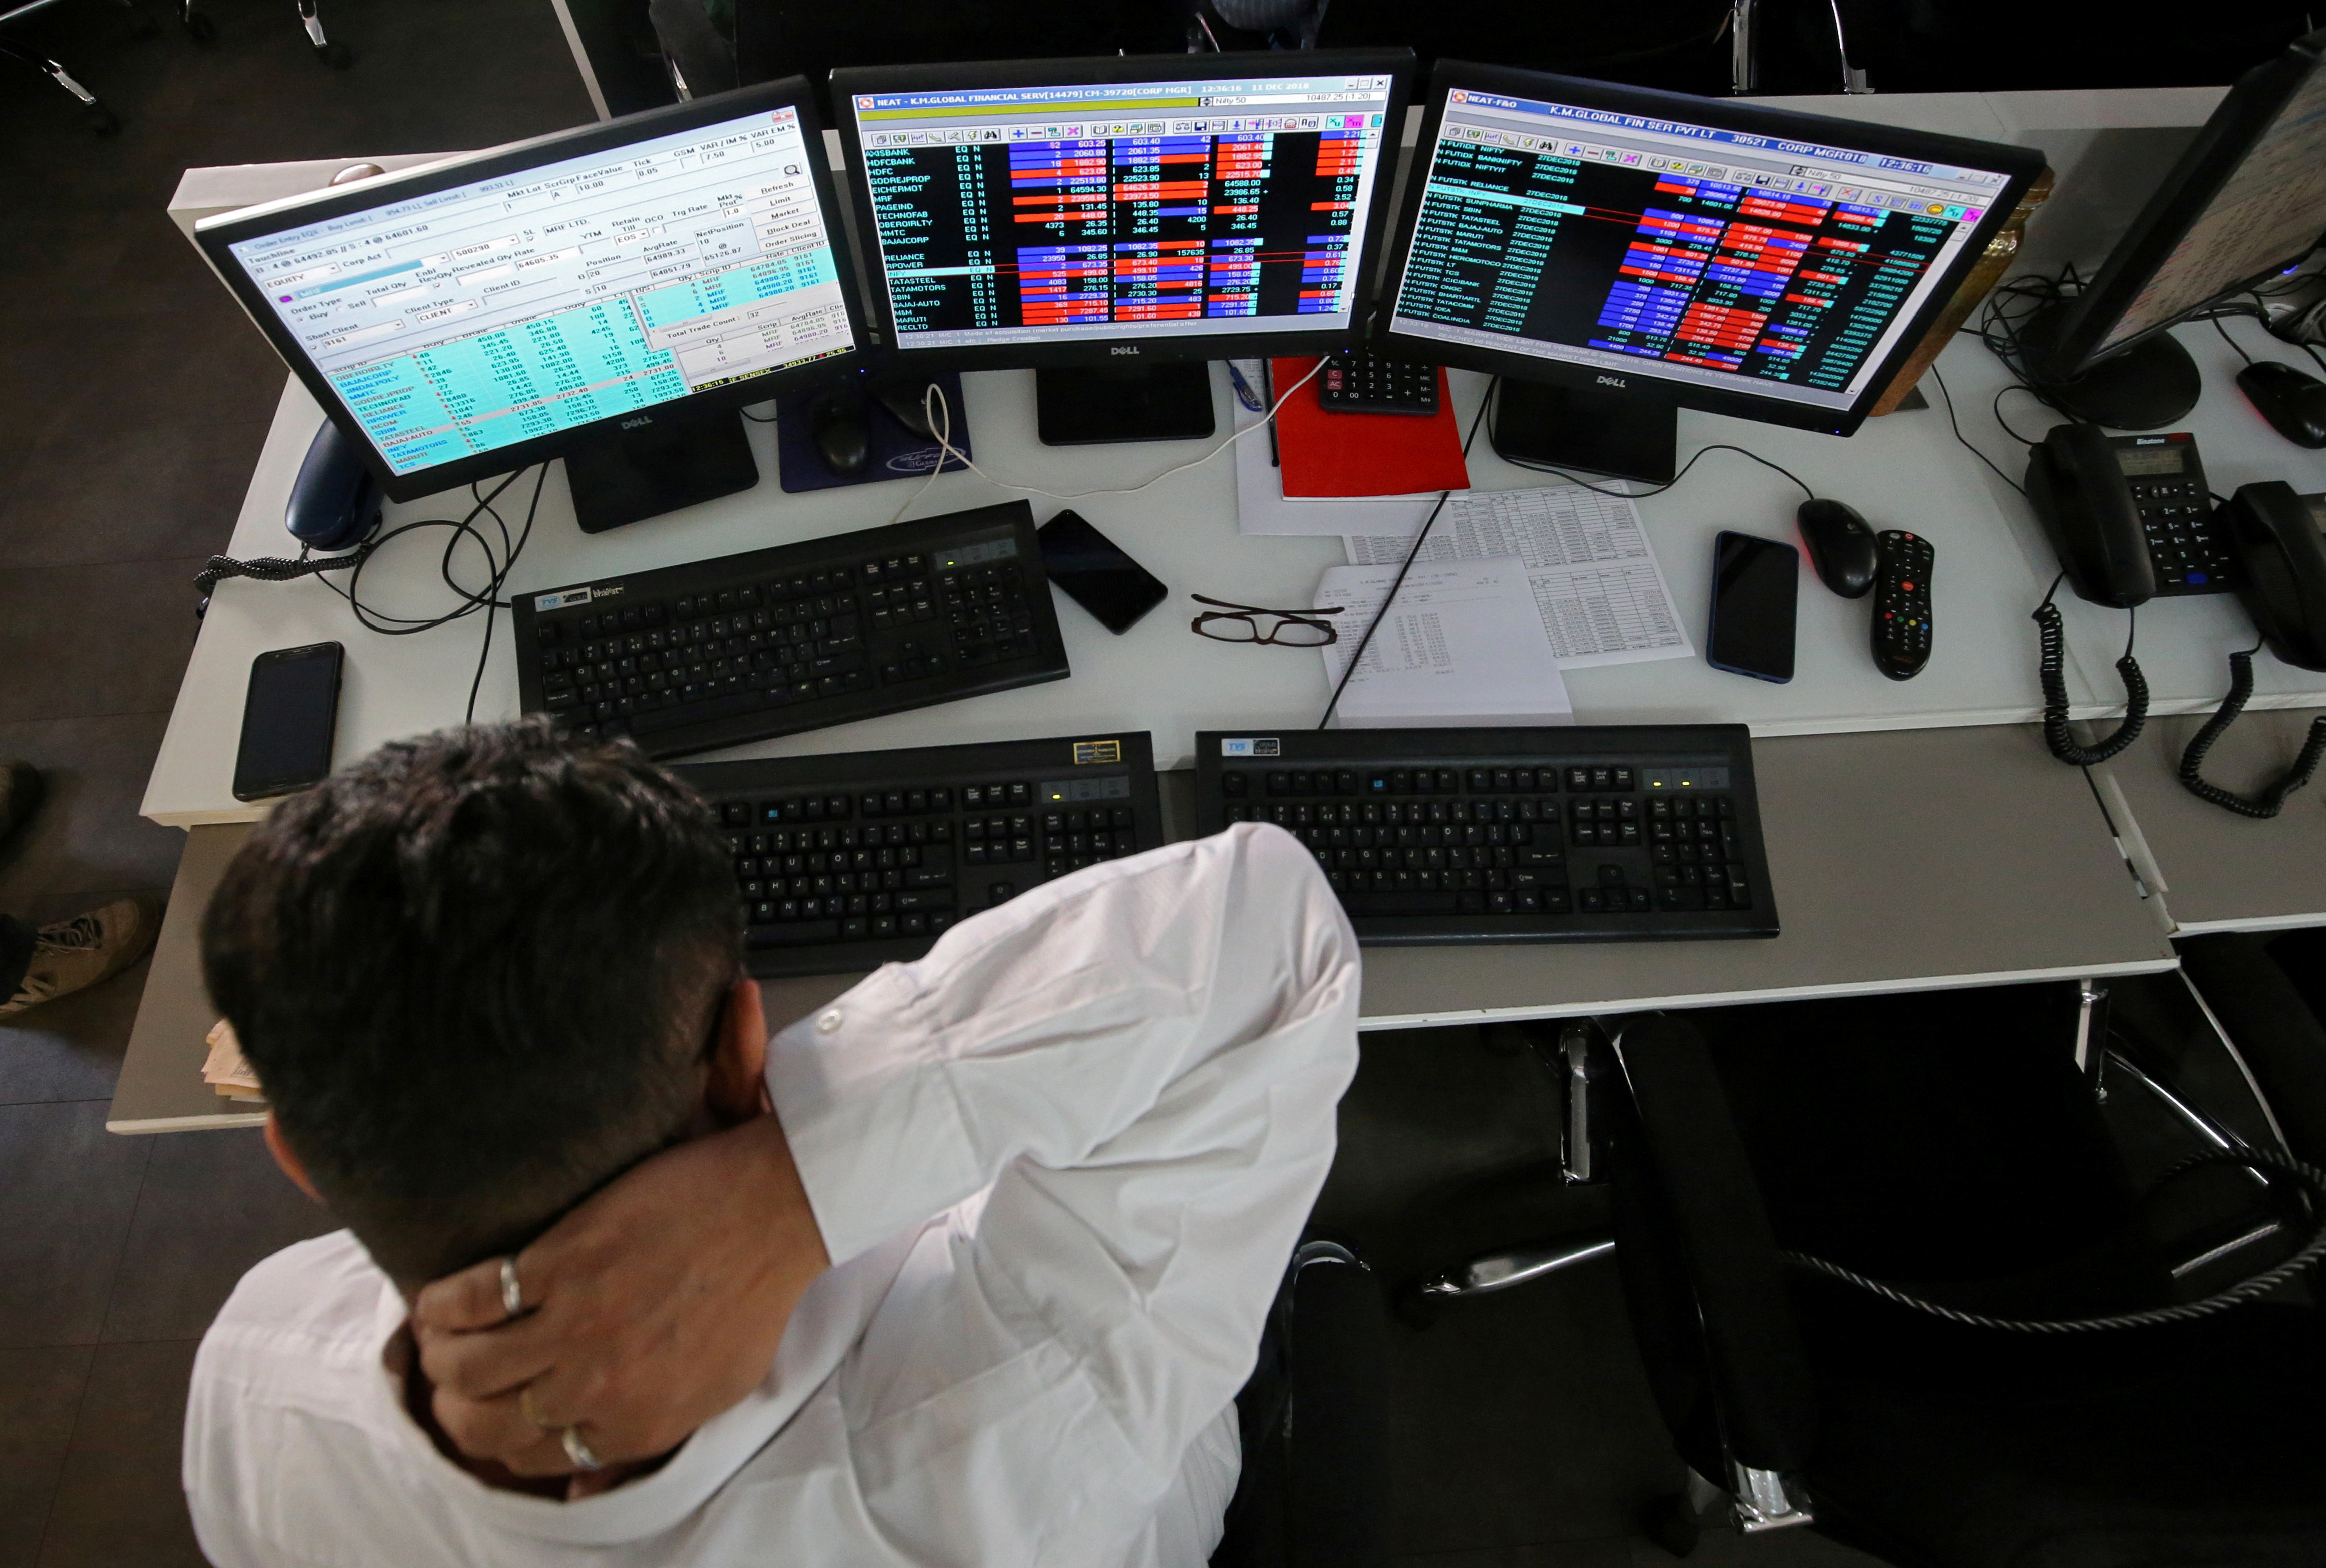 A broker reacts while trading at his computer terminal at a stock brokerage firm in Mumbai, India, December 11, 2018. REUTERS/Francis Mascarenhas/File Photo